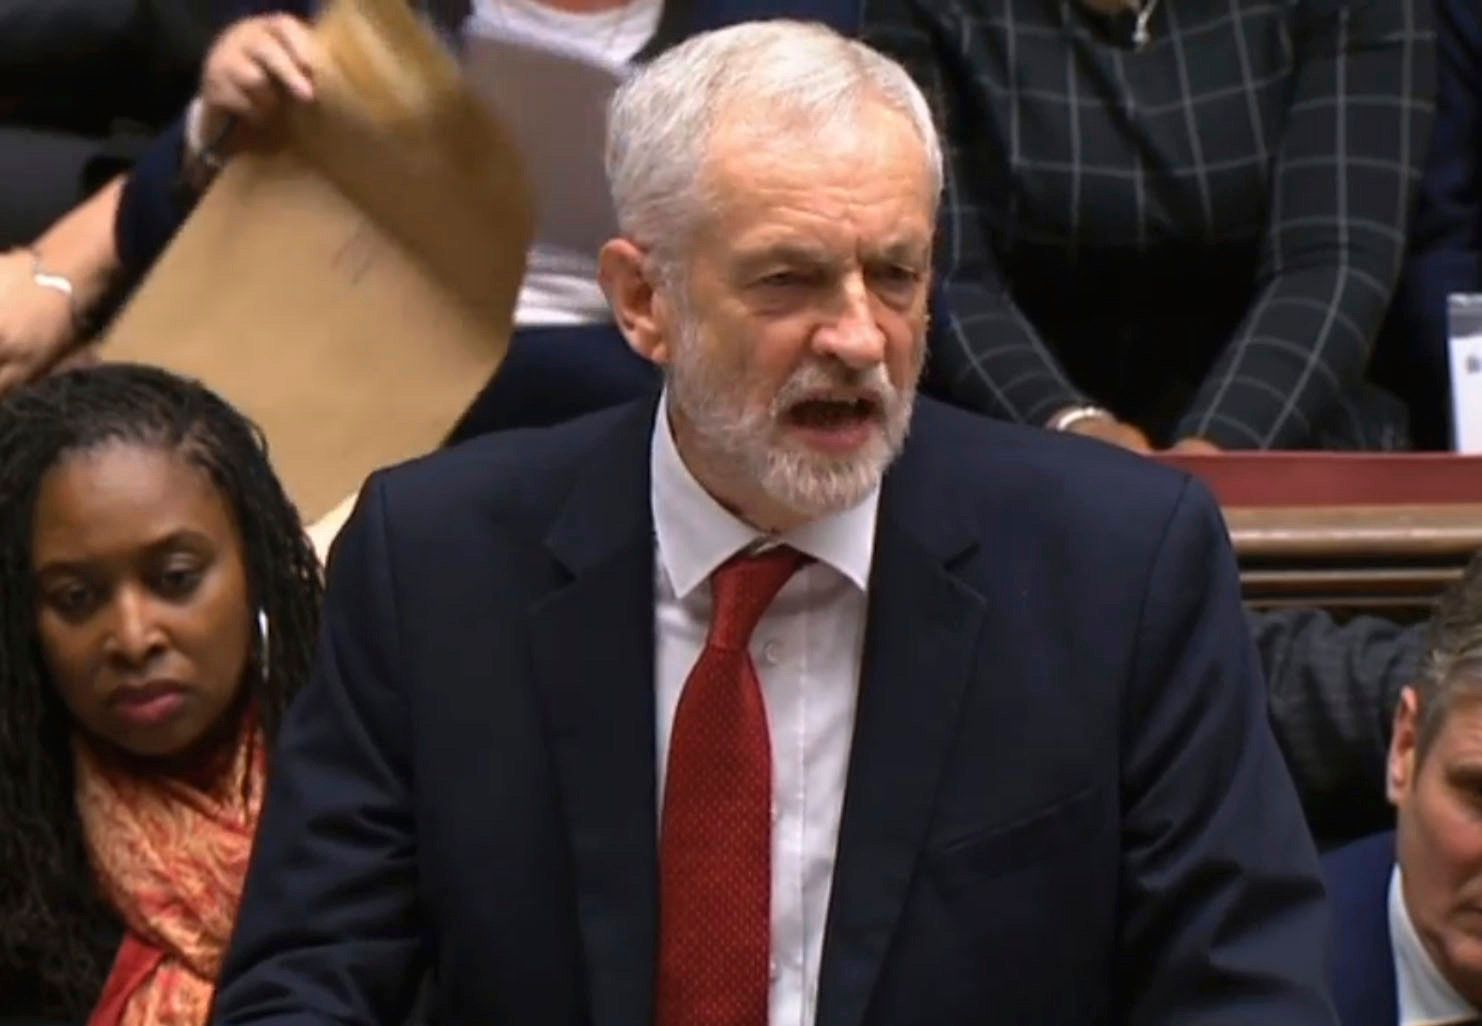 Jeremy Corbyn Bids For Election By Triggering No Confidence Vote In